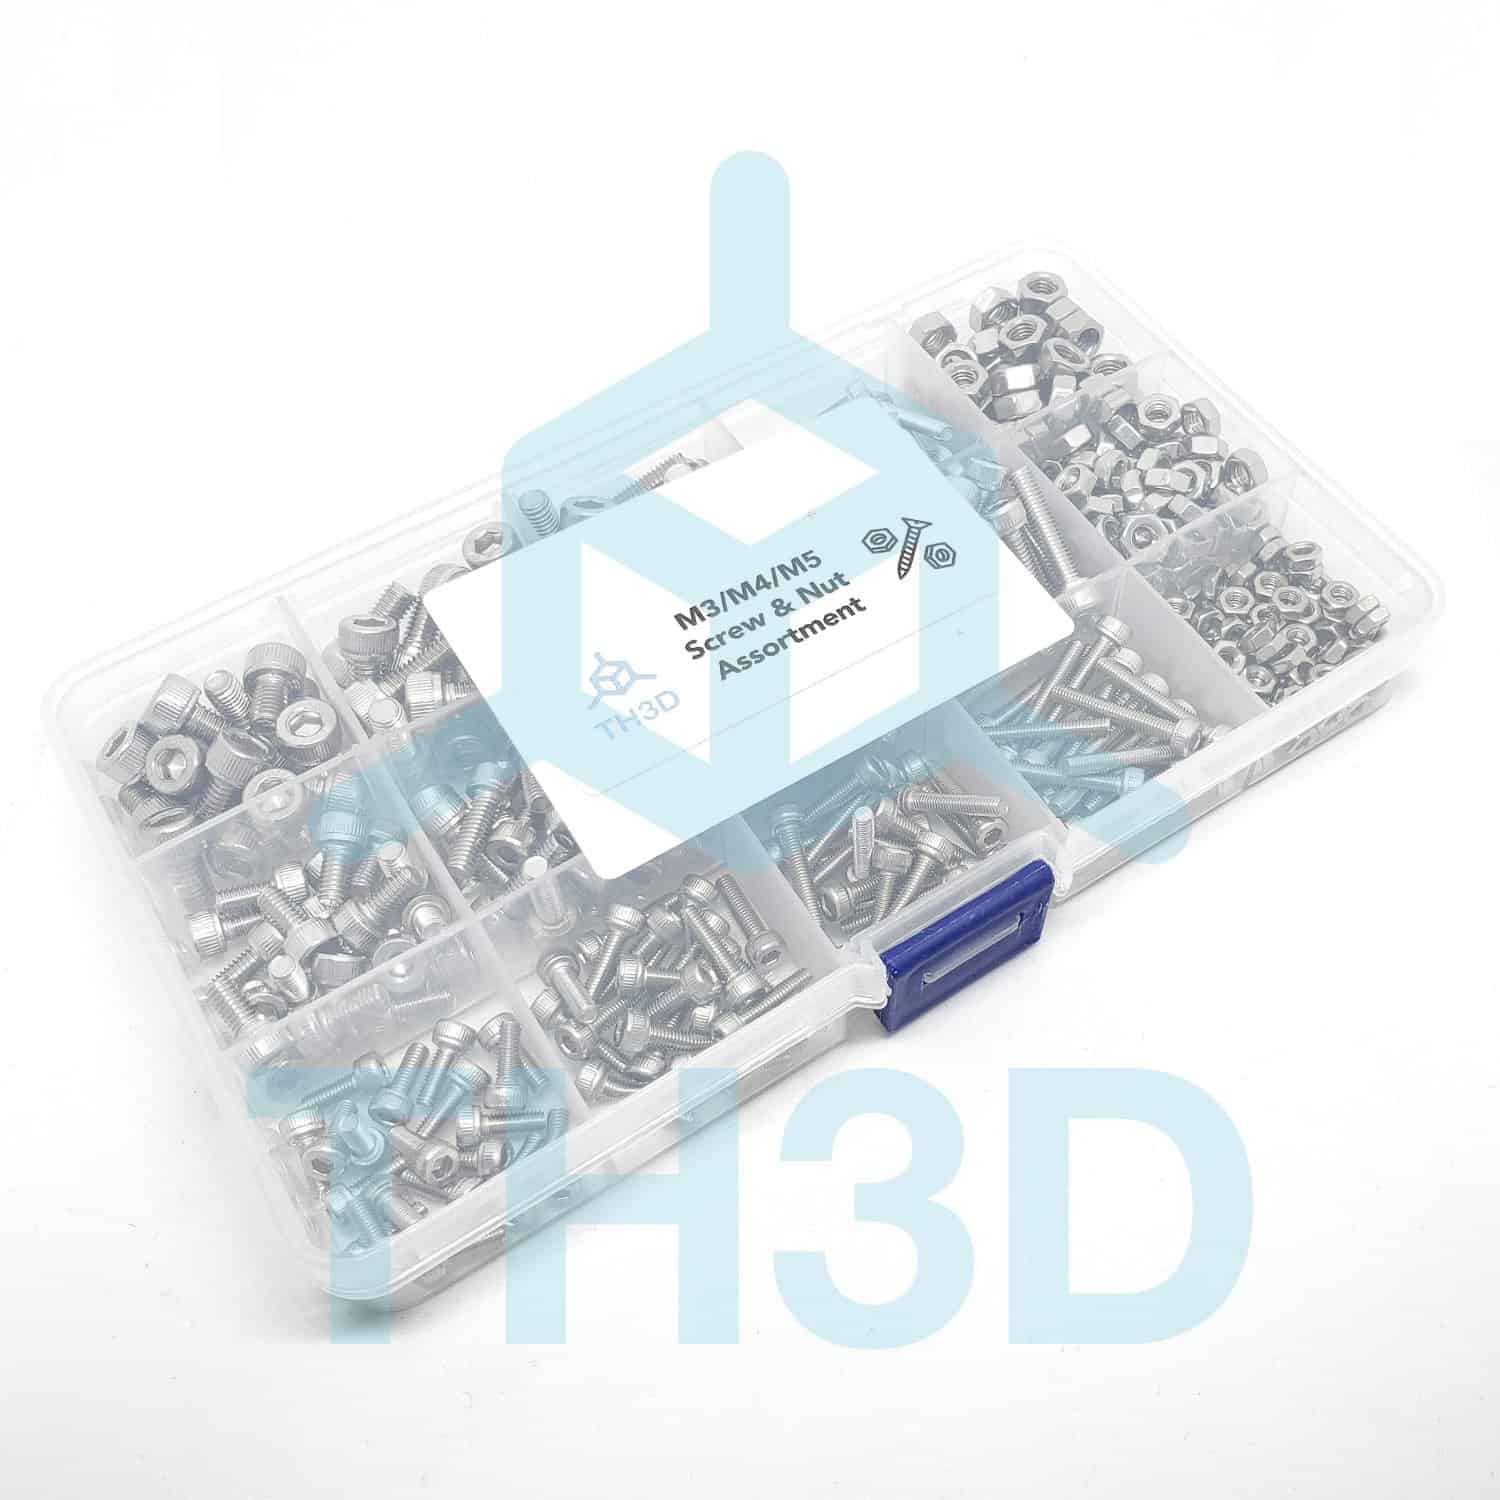 f45352eb6a67 Add on M3 M4 M5 screw assortment  Add for  17.99  17.09. In stock. Earn up  to 258 Benchies.  12.99. CR-10 CR-10S V6 Heavy Duty Mount - 5015 Fan and ...